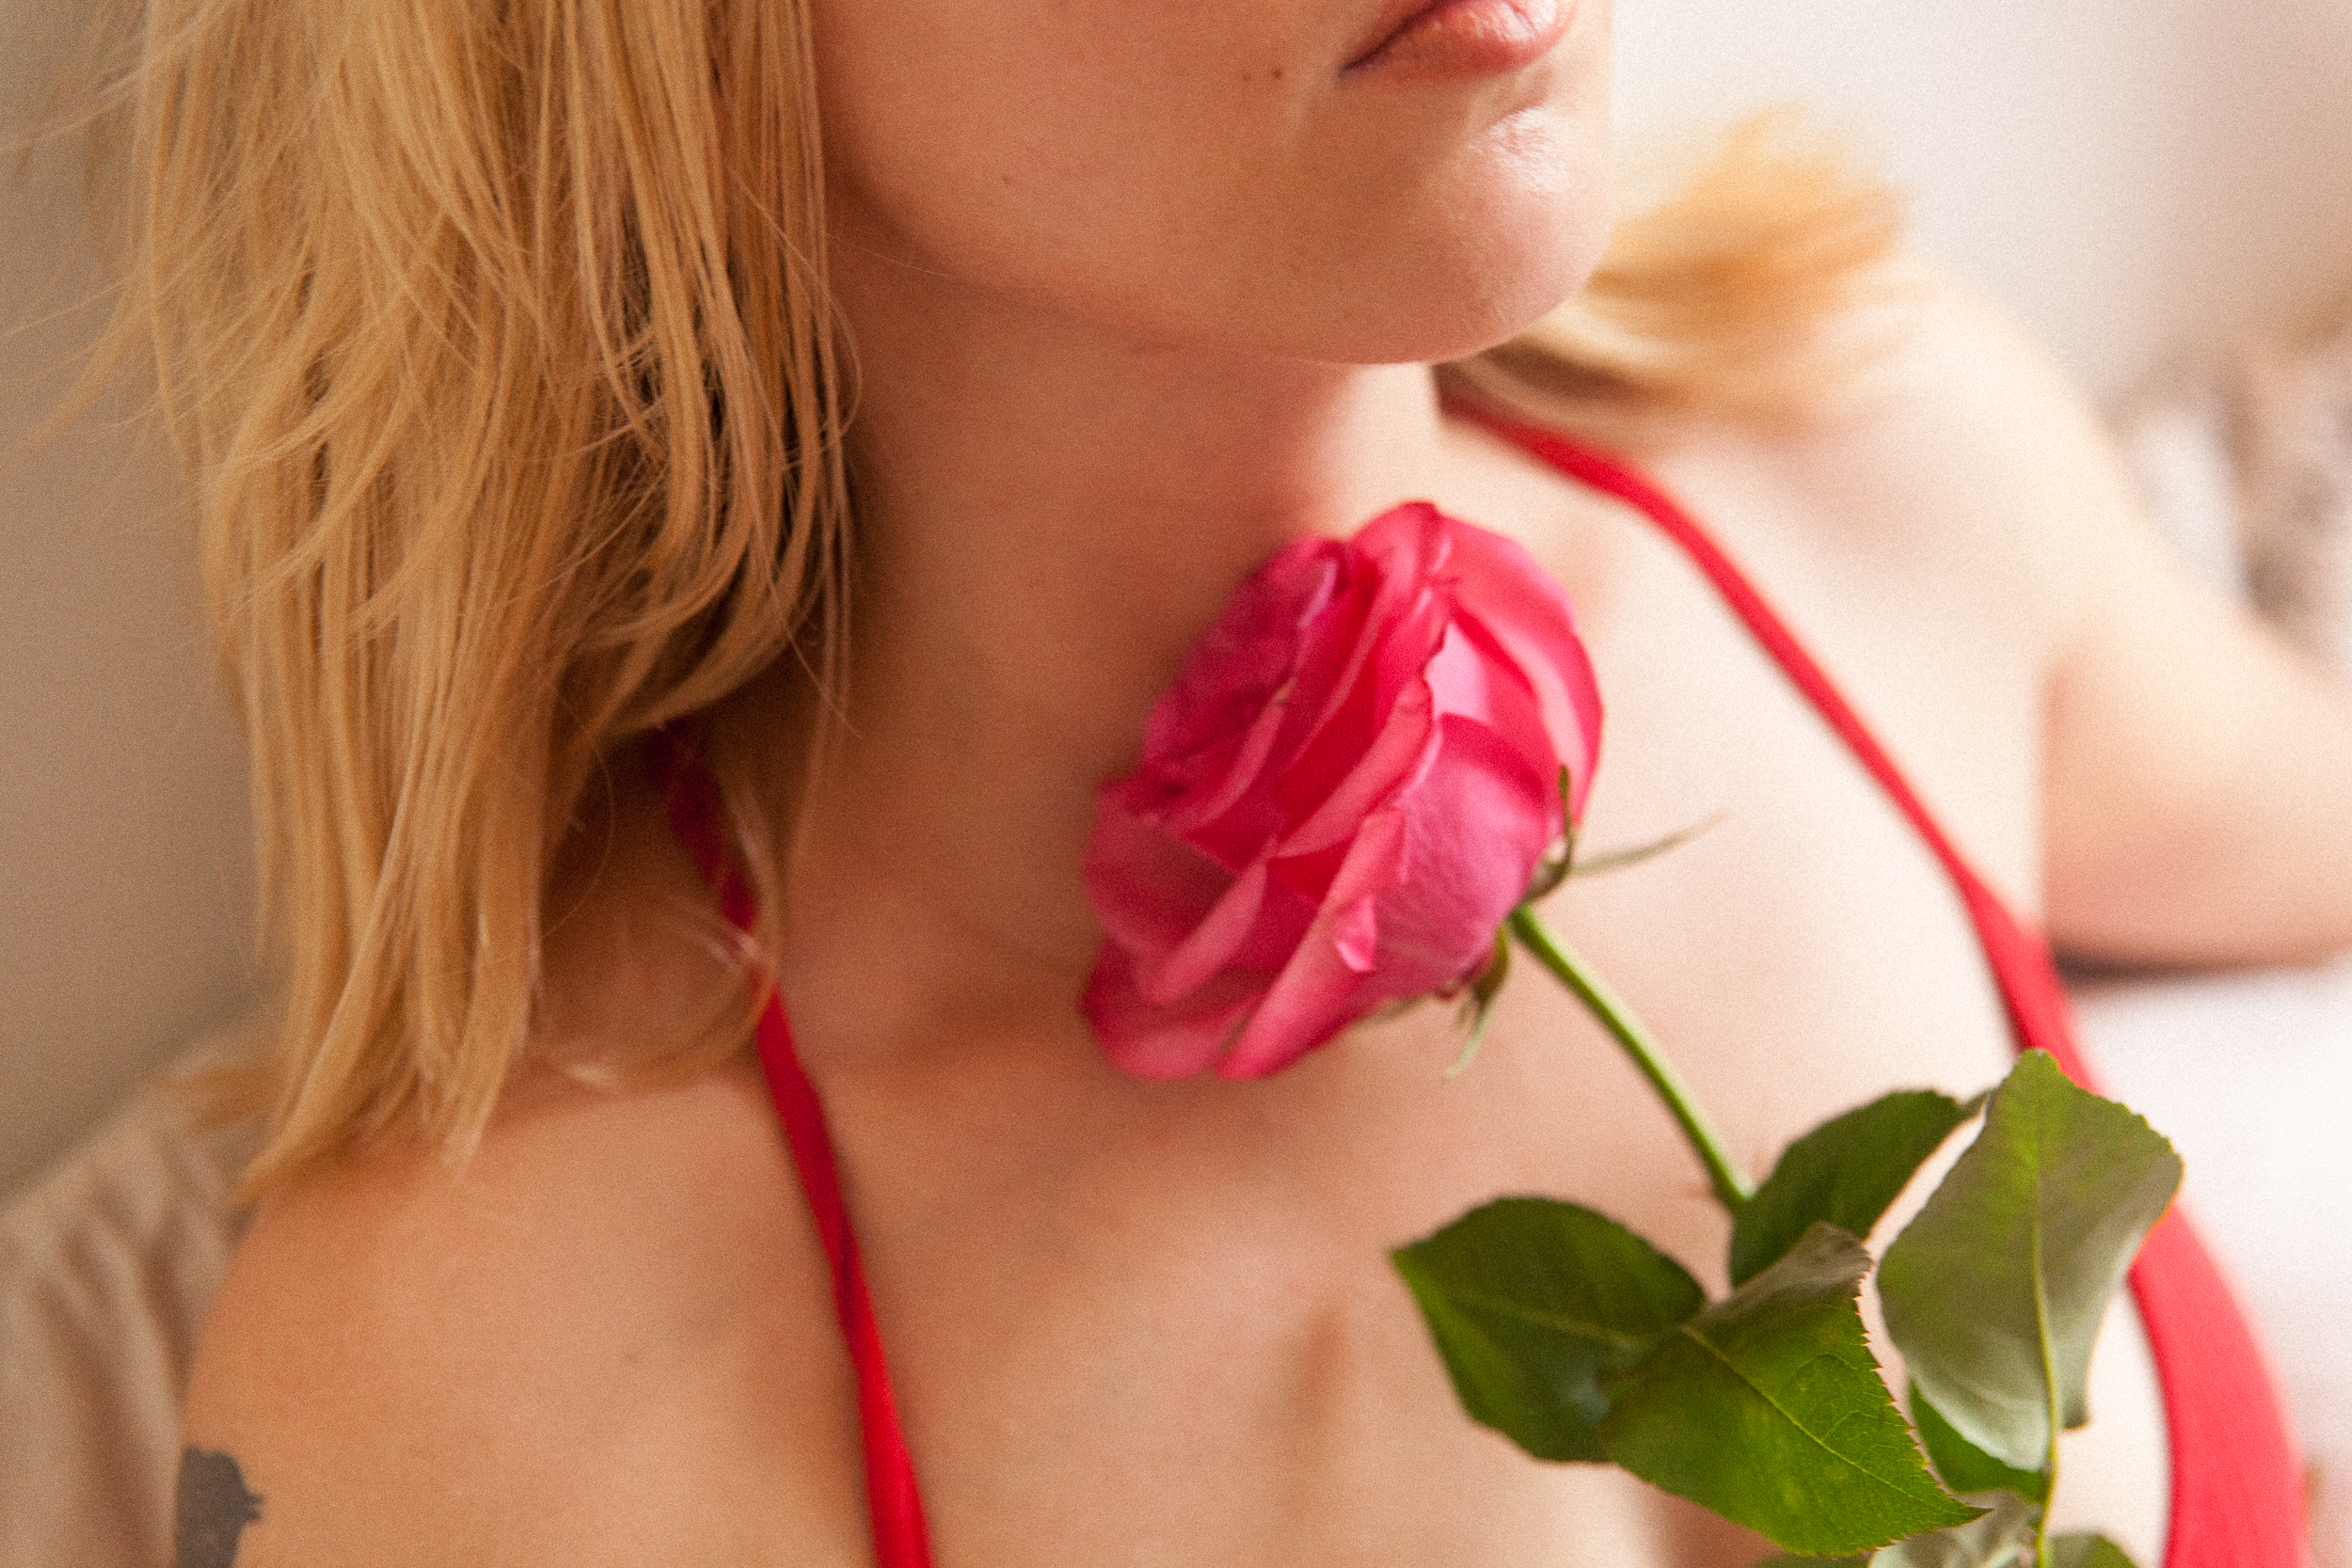 sensual portrait of a woman pink rose red lingerie